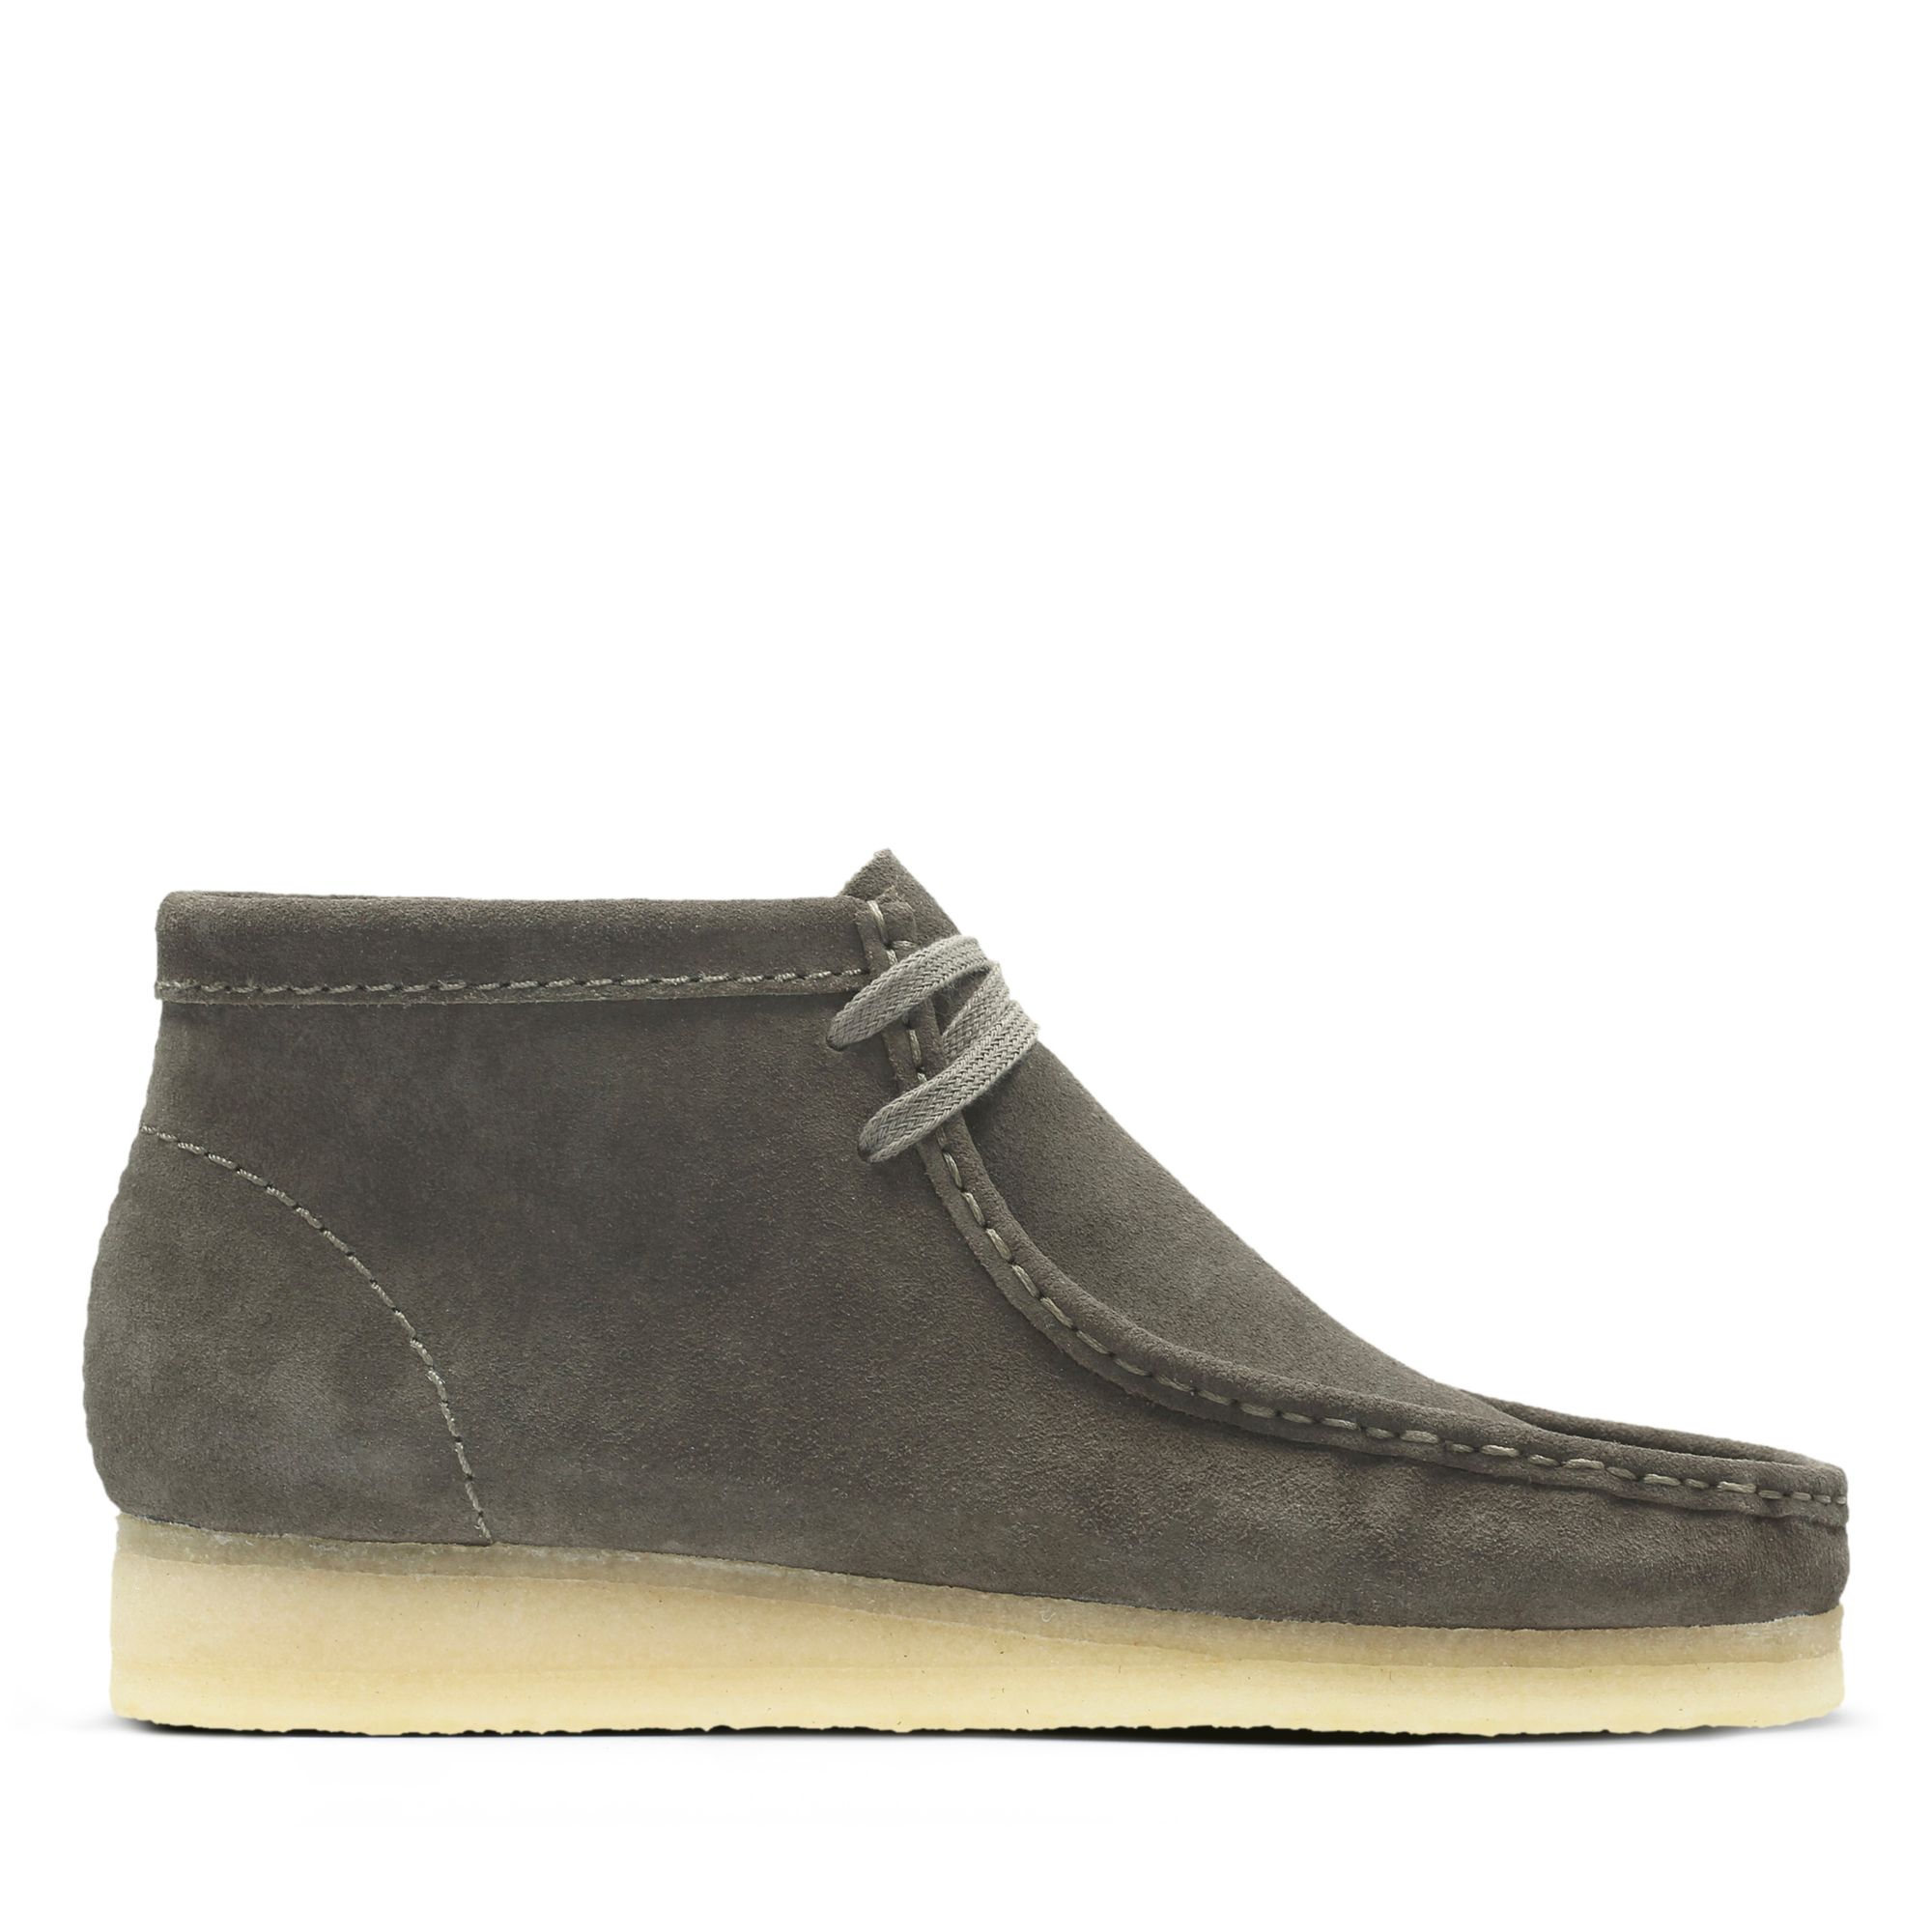 Clarks Shoes Bluewater